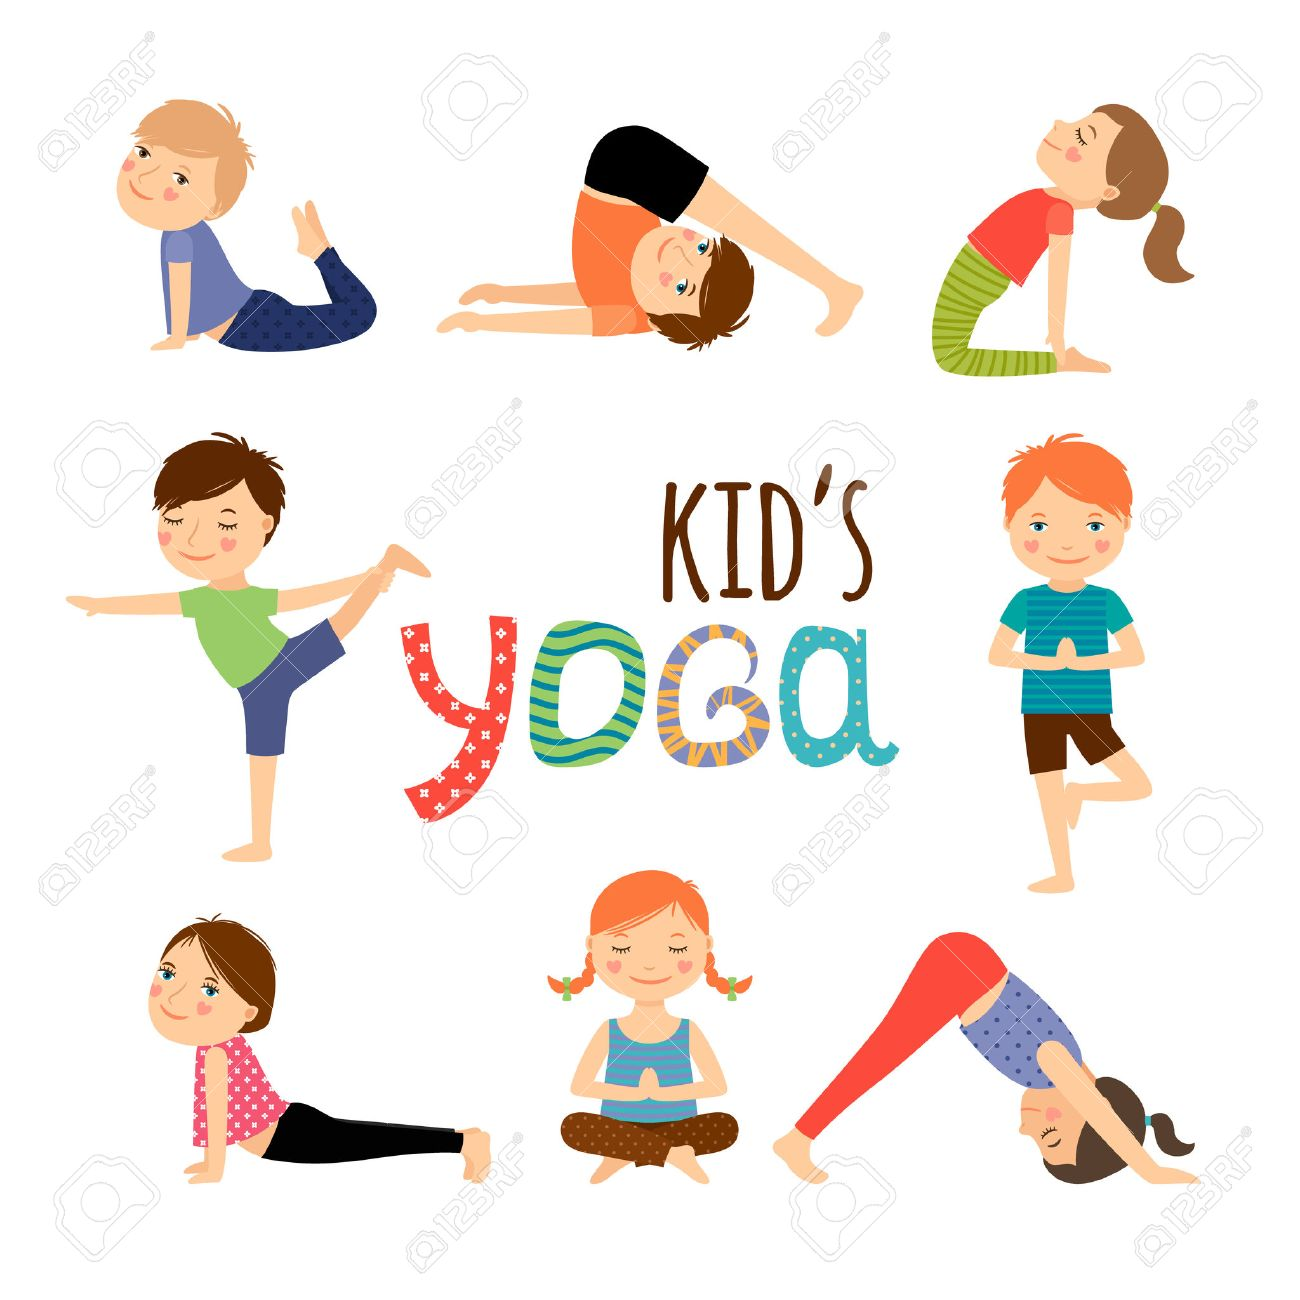 Yoga Kids Set Gymnastics For Children And Healthy Lifestyle